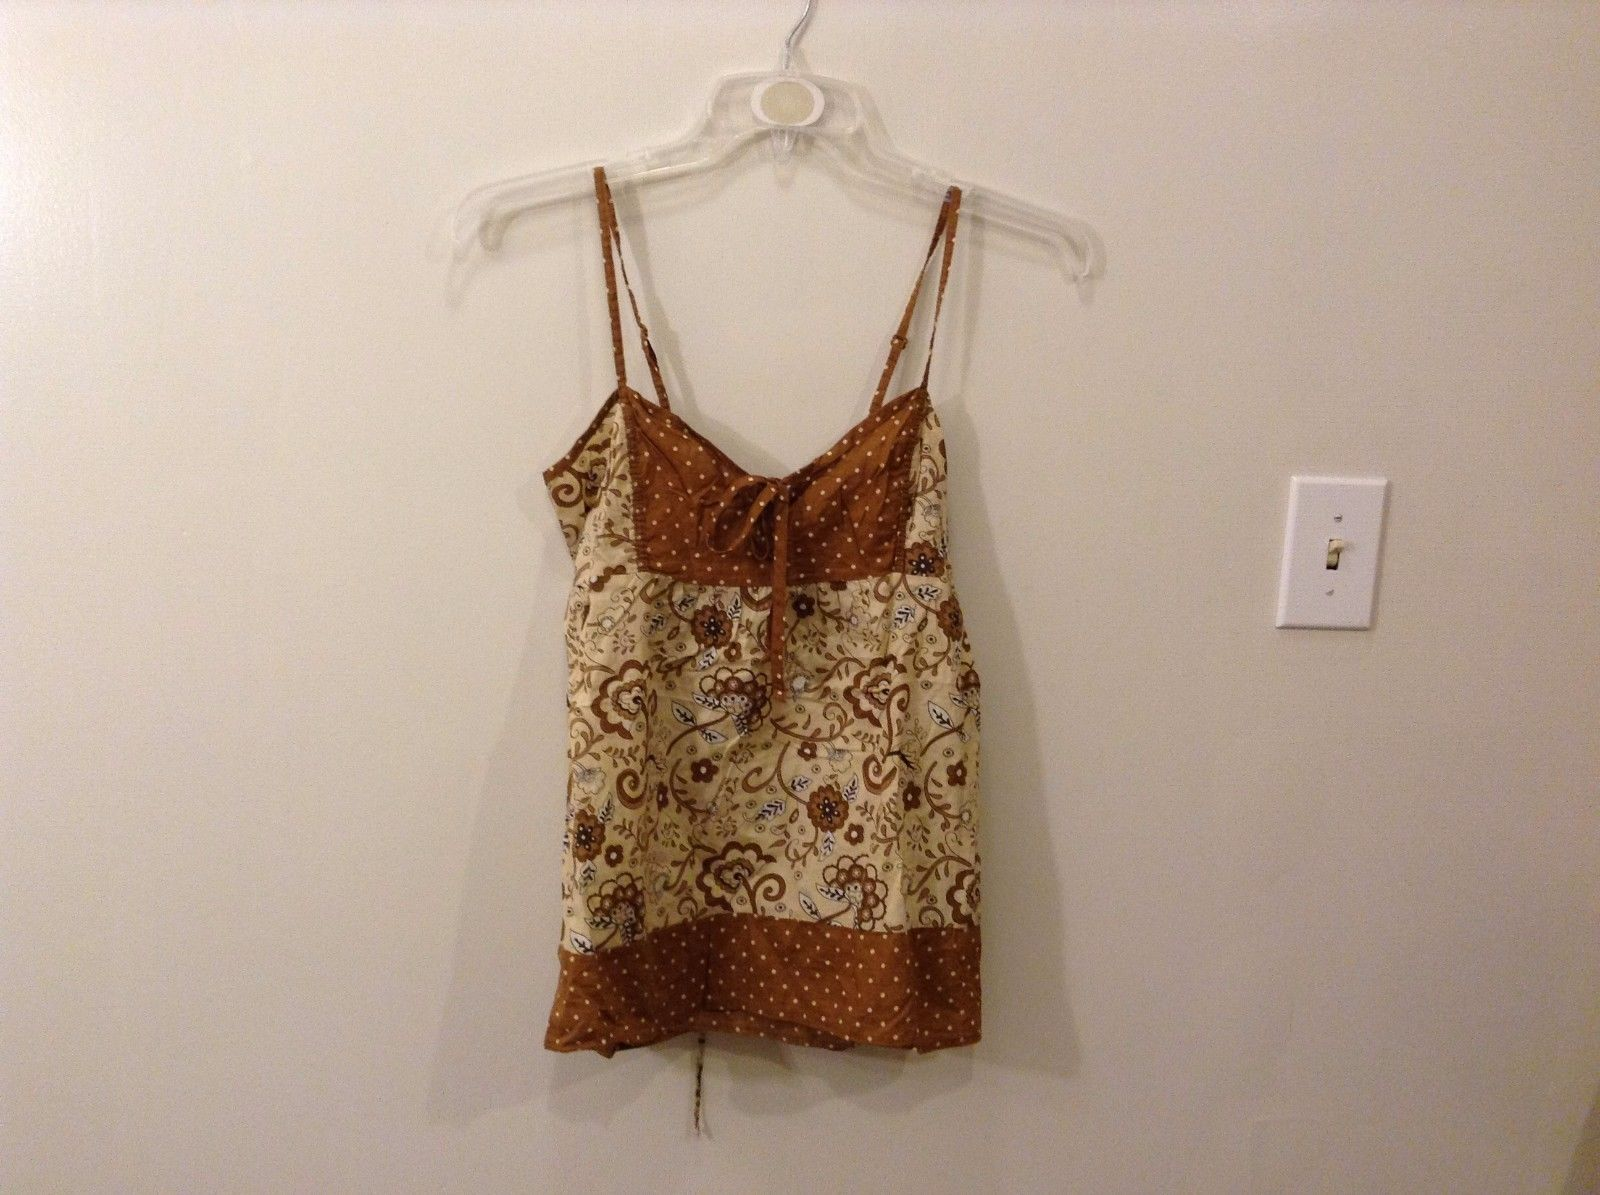 Bugle Boy Medium Floral Earthy Camisole With Ribbons & Polka Dots Taupe Brown